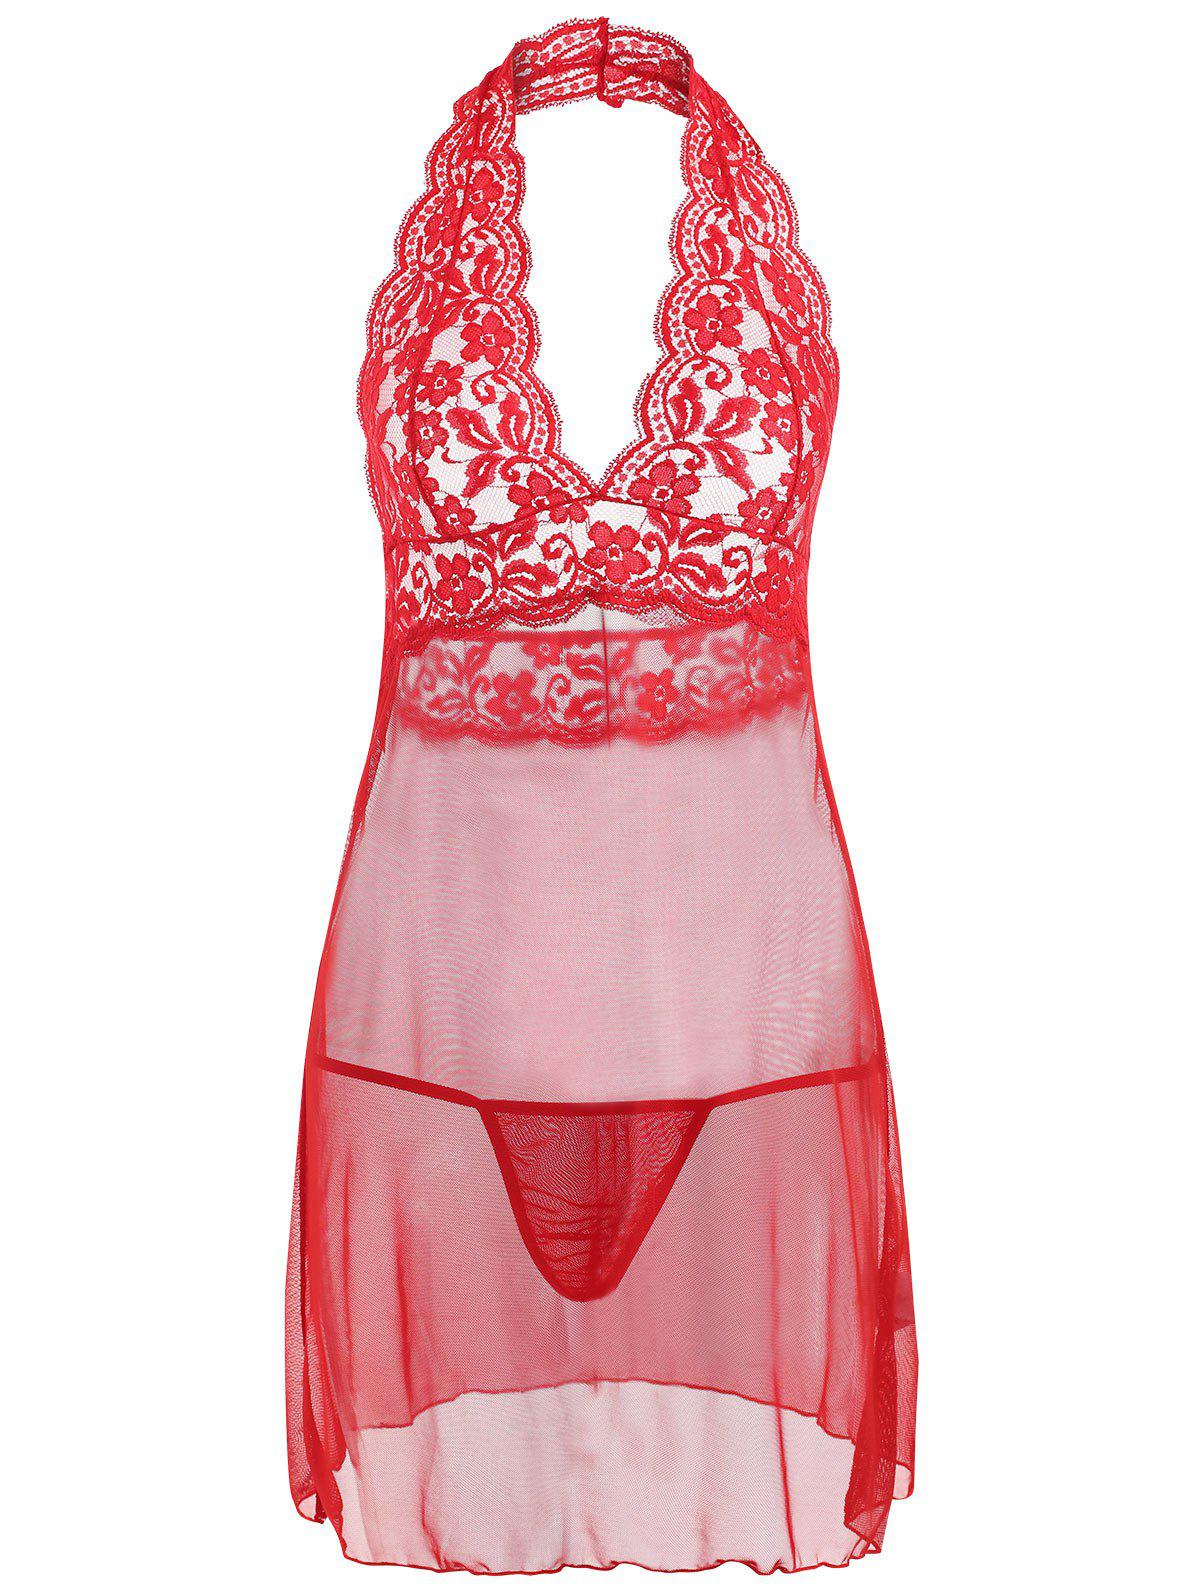 Halter Lace Mesh Low Back Babydoll - RED L